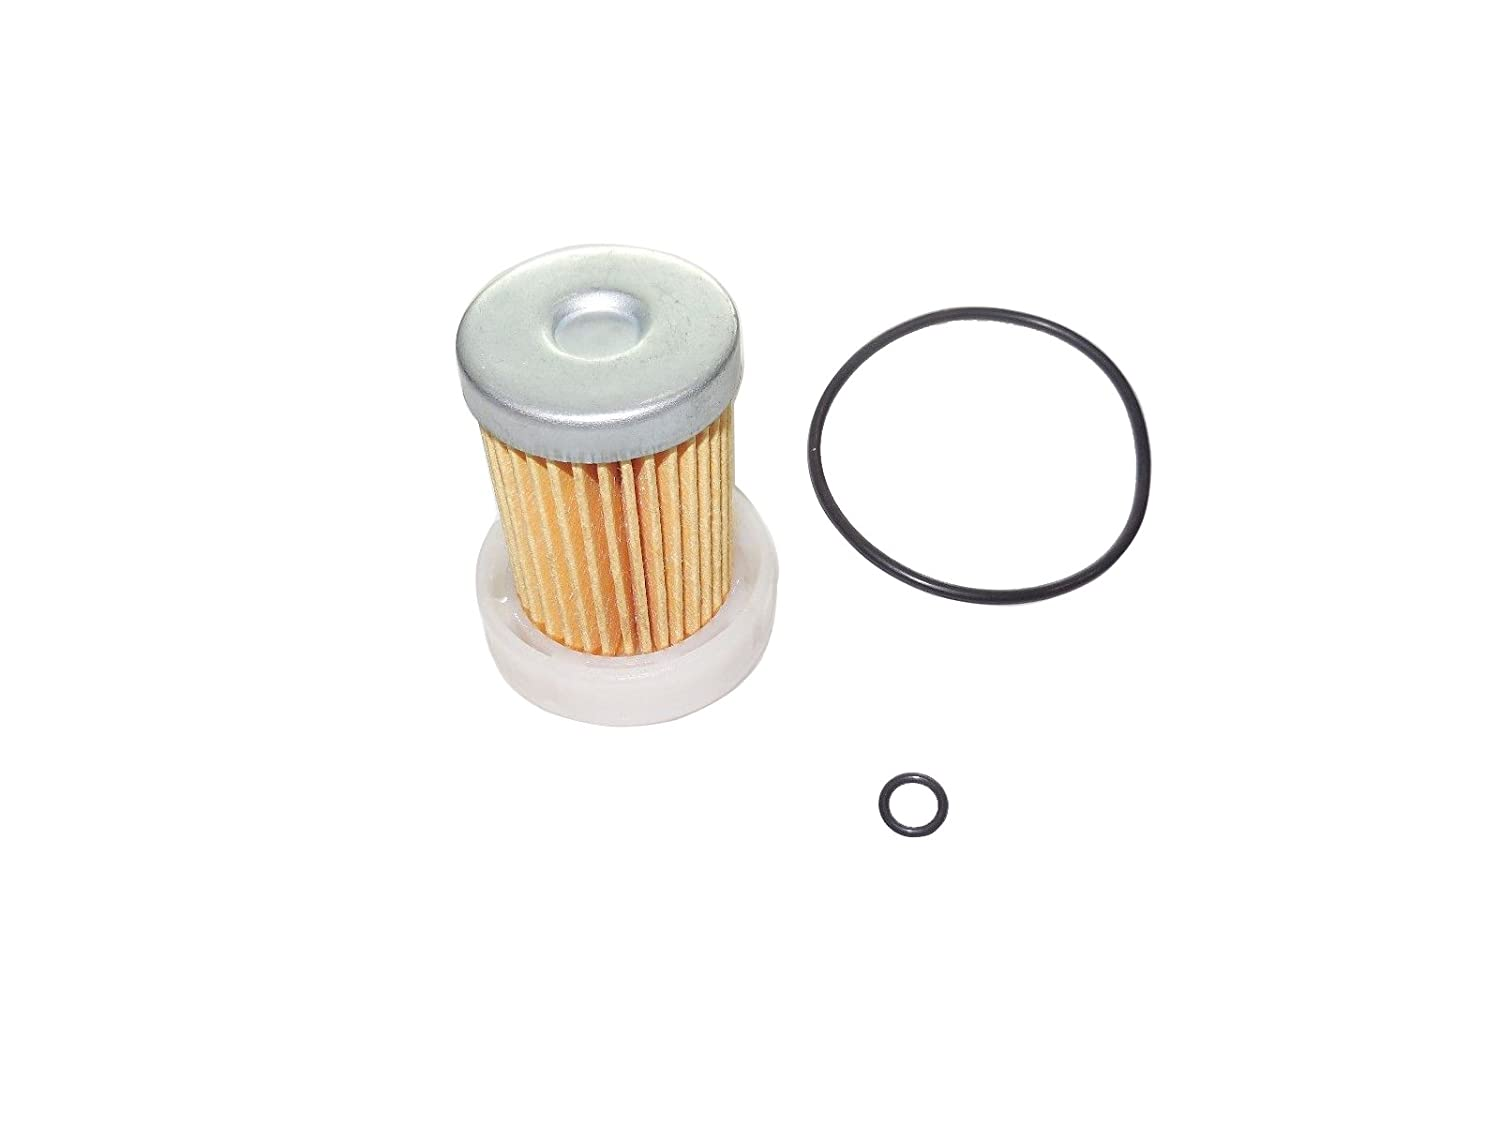 New Kubota Fuel Filter with O-Rings 6A320-59930